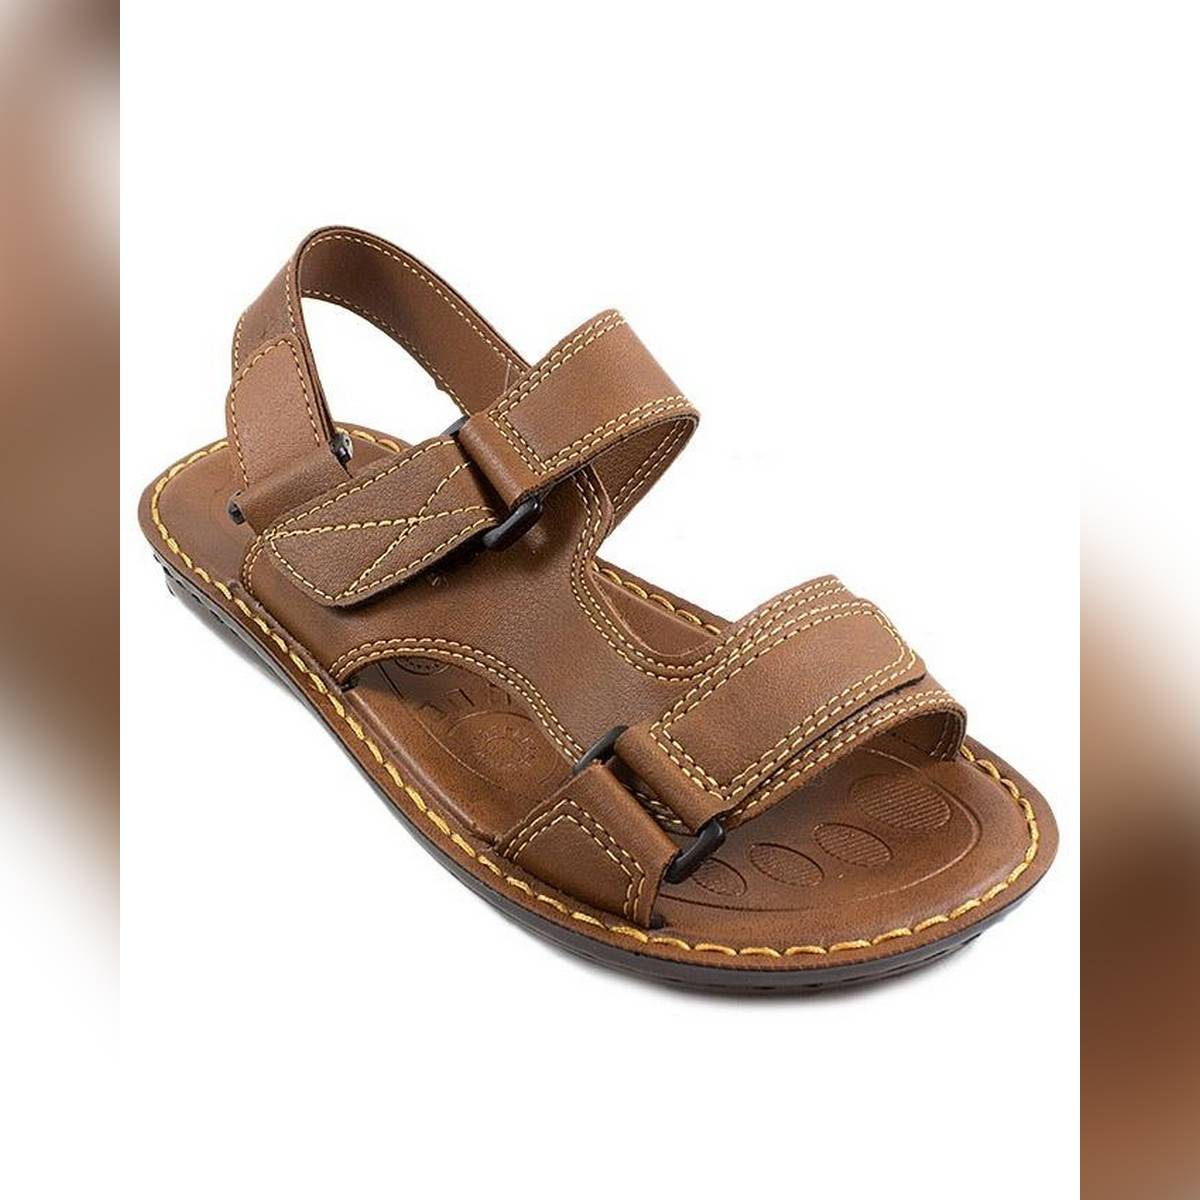 Aerosoft Soft Brown Synthetic Leather Sandals For Men P0301